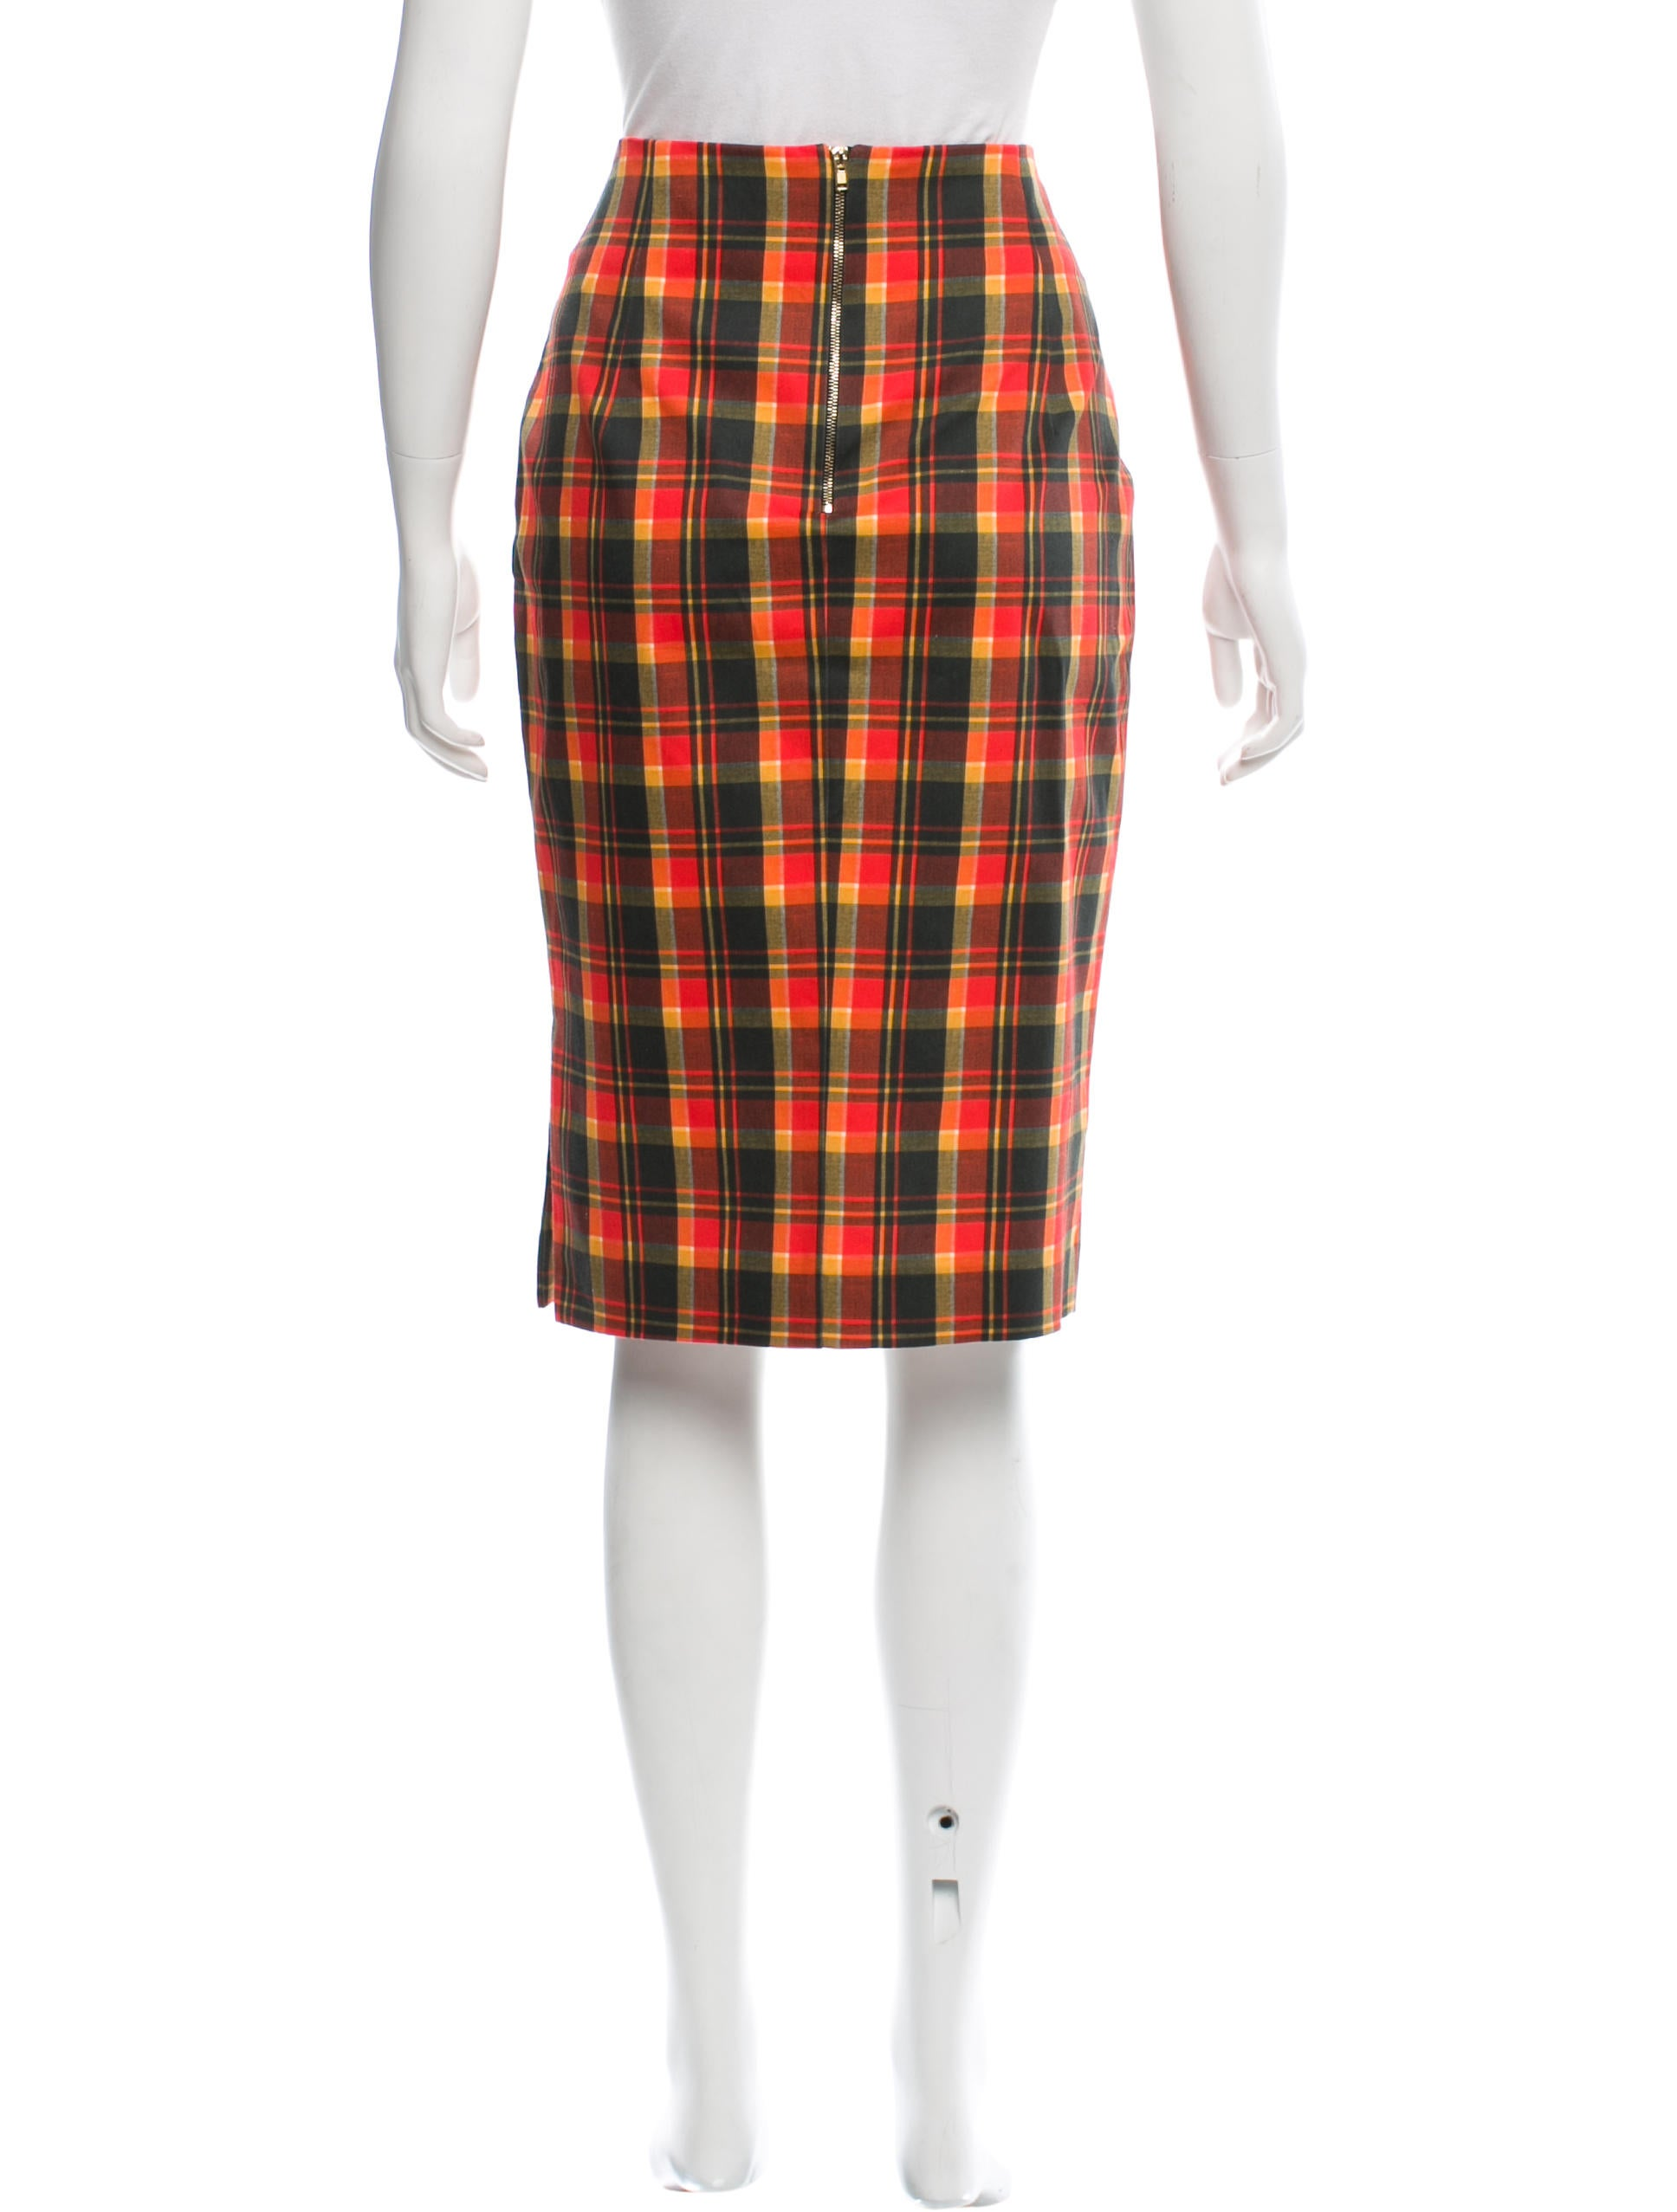 Shop women's skirts at loadingbassqz.cf Discover a stylish selection of the latest brand name and designer fashions all at a great value. Plaid Pencil Skirt. $ compare at $30 see similar styles hide similar styles quick look. High Rise Plaid Pencil Skirt.